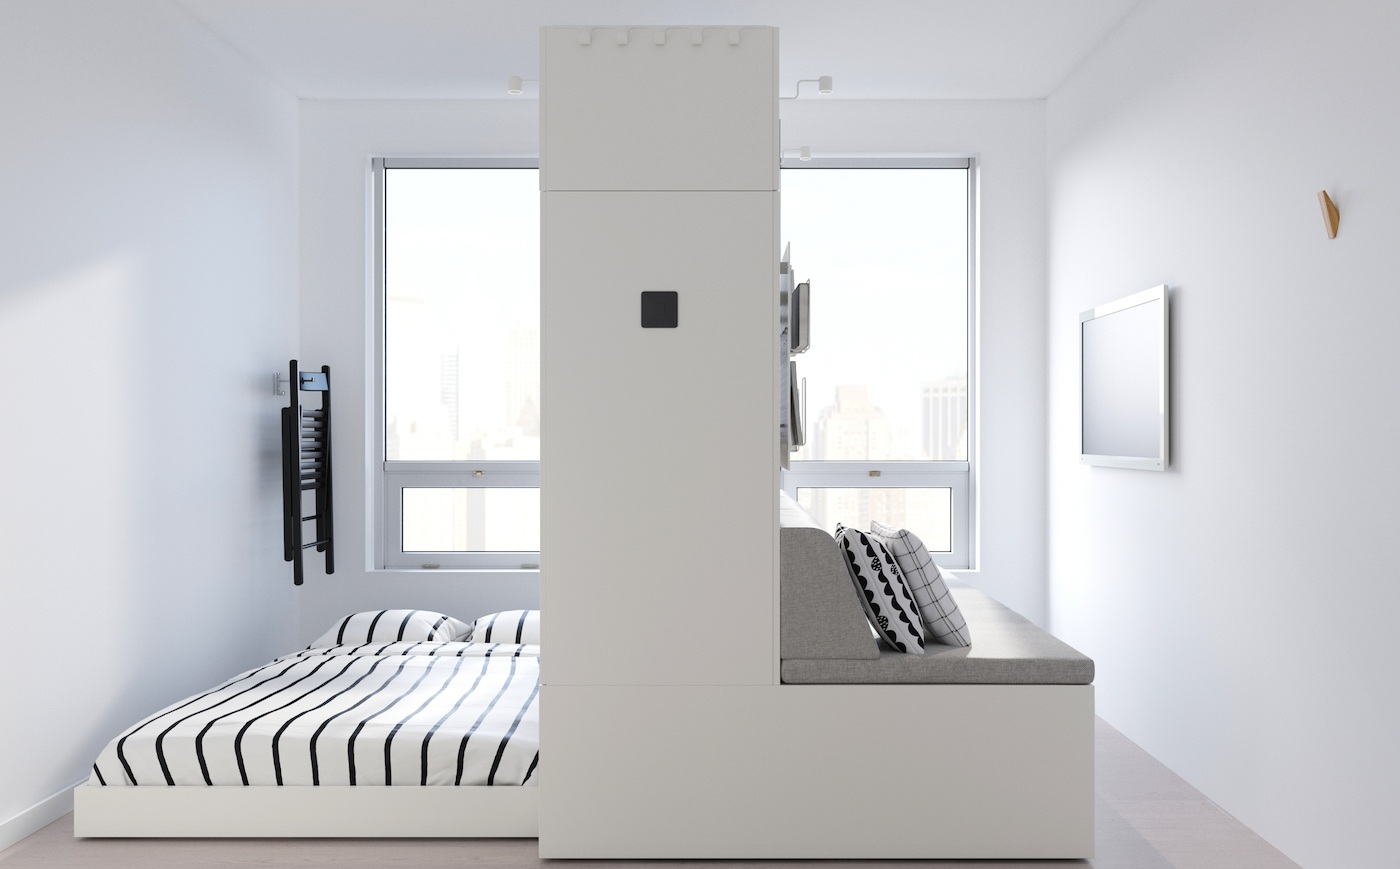 Thumbnail for Ikea's robotic 'furniture of the future' transforms 1 room into 3 for the ultimate minimalist aesthetic